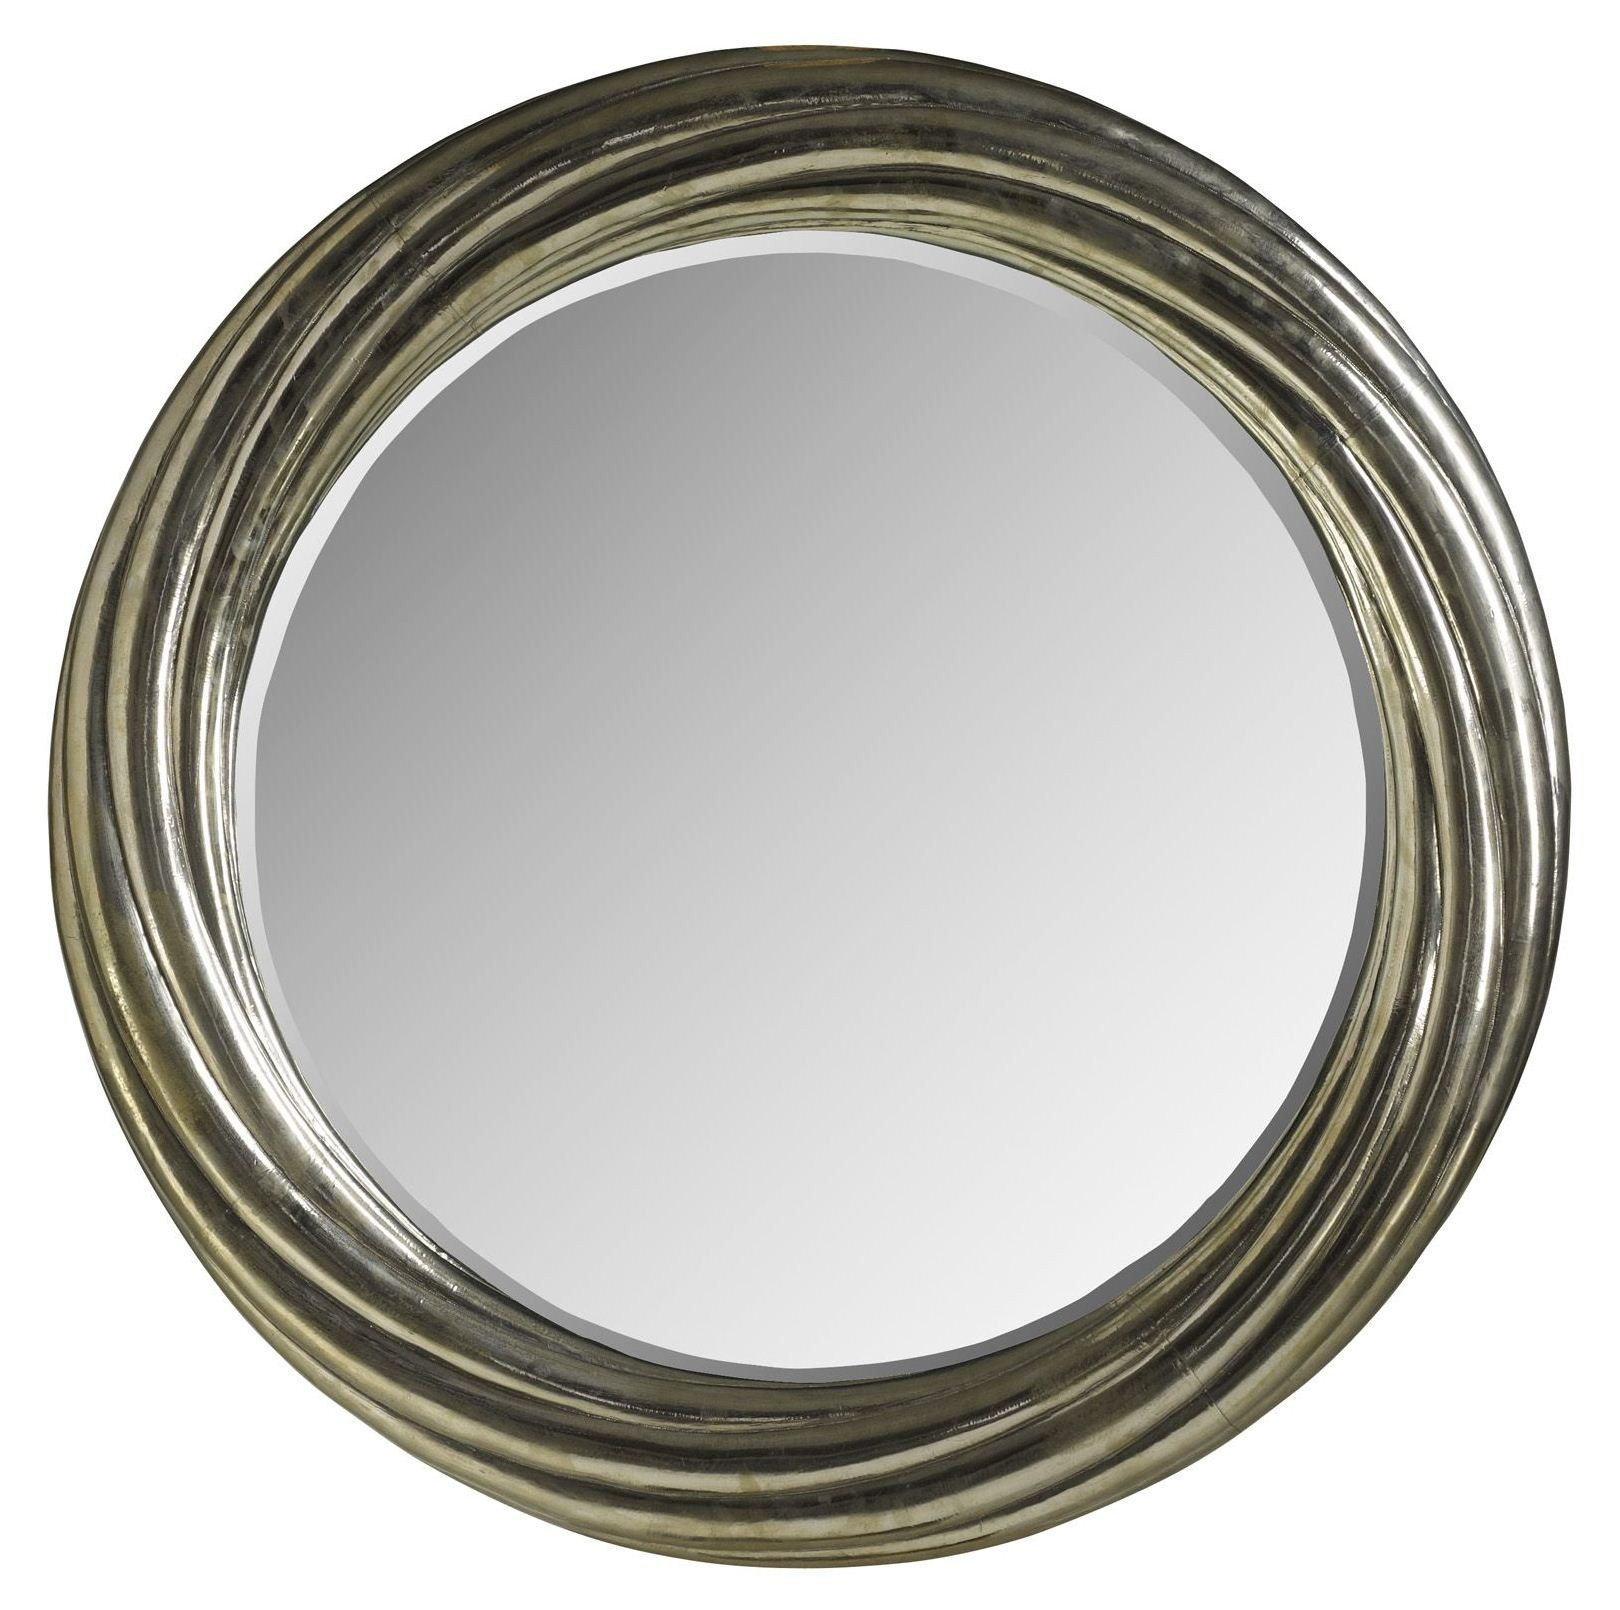 Treviso Small Round Mirror from Brownstone (TR018